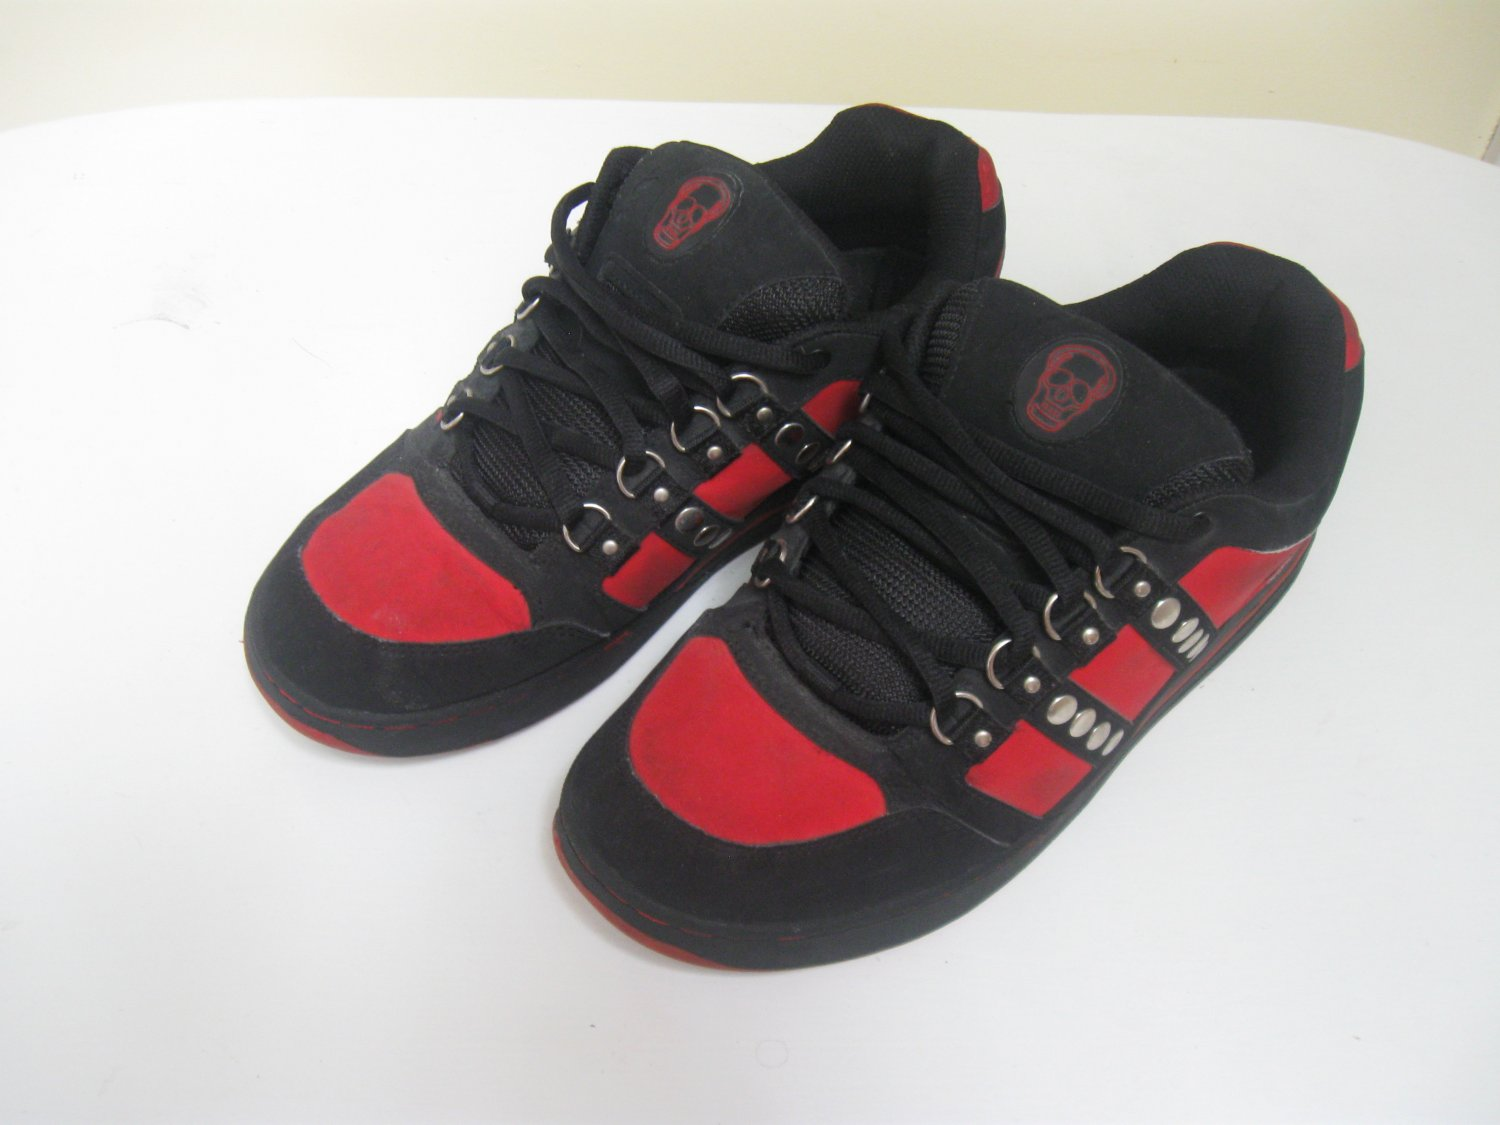 Anarchic Red and Black Skate Shoes- Mens US Size 11